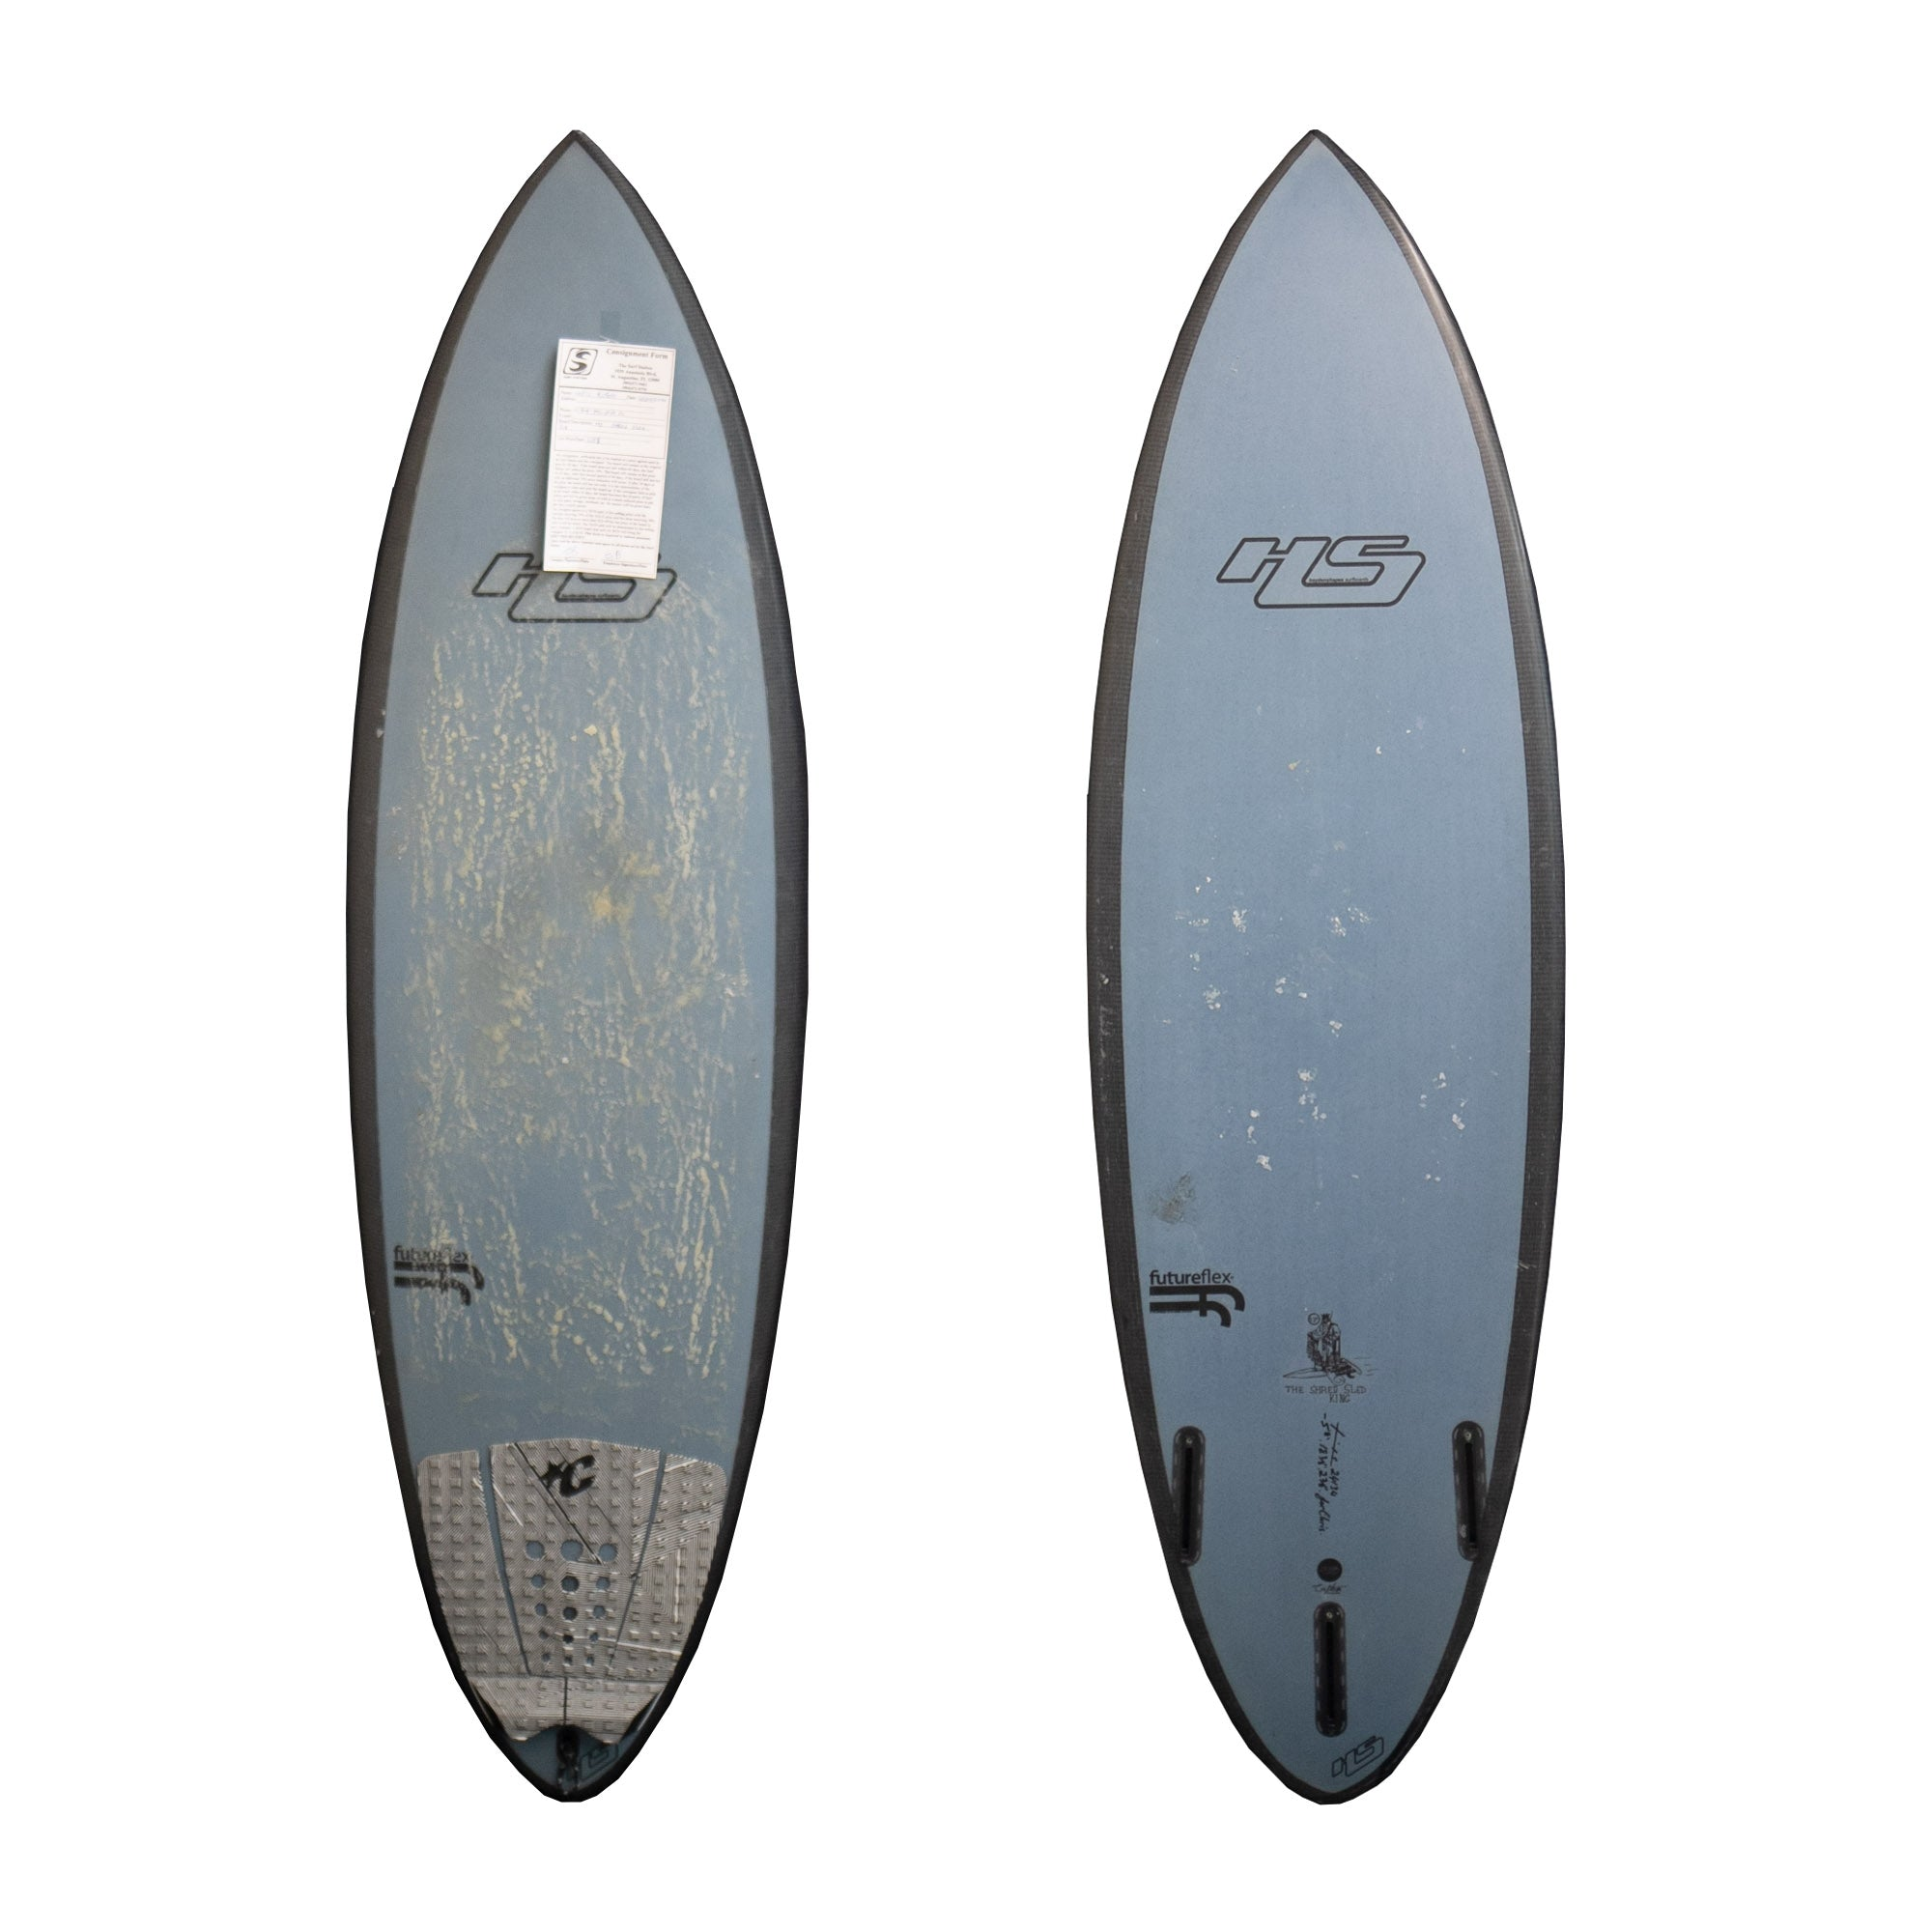 Hayden Shapes Shred Sled 5'8 Used Surfboard